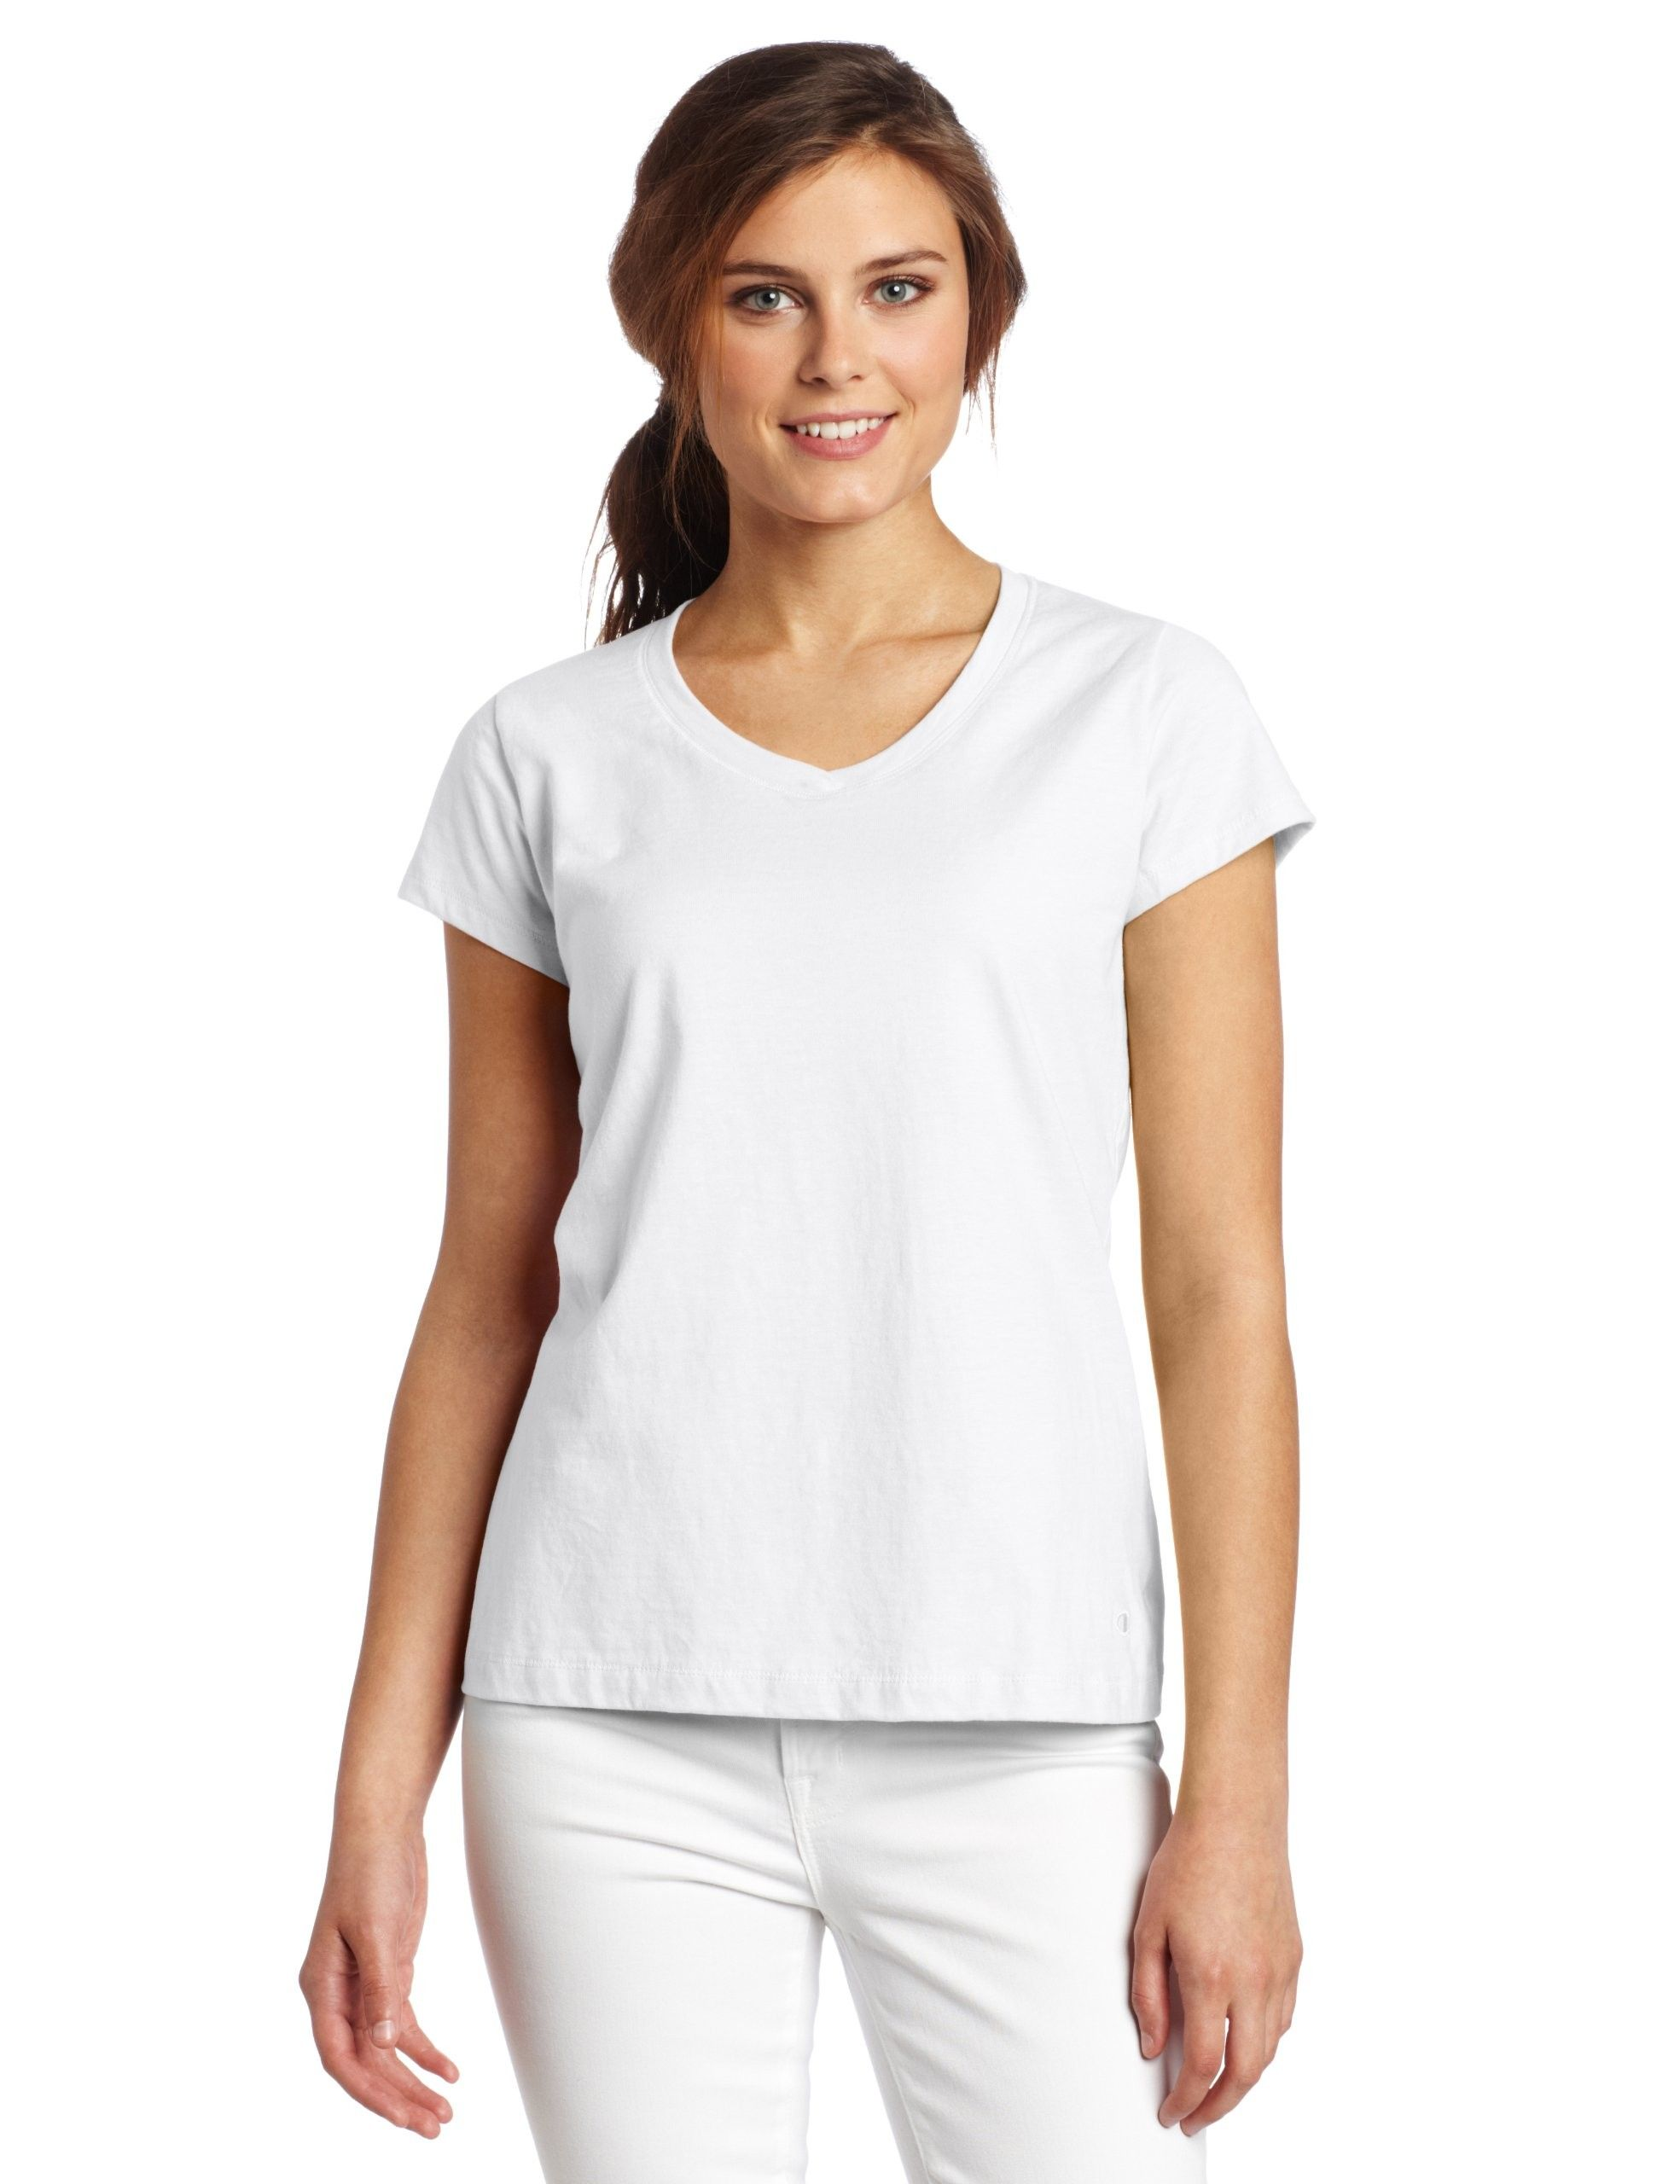 Image for fashion for women white t shirt style for Asheville t shirt company